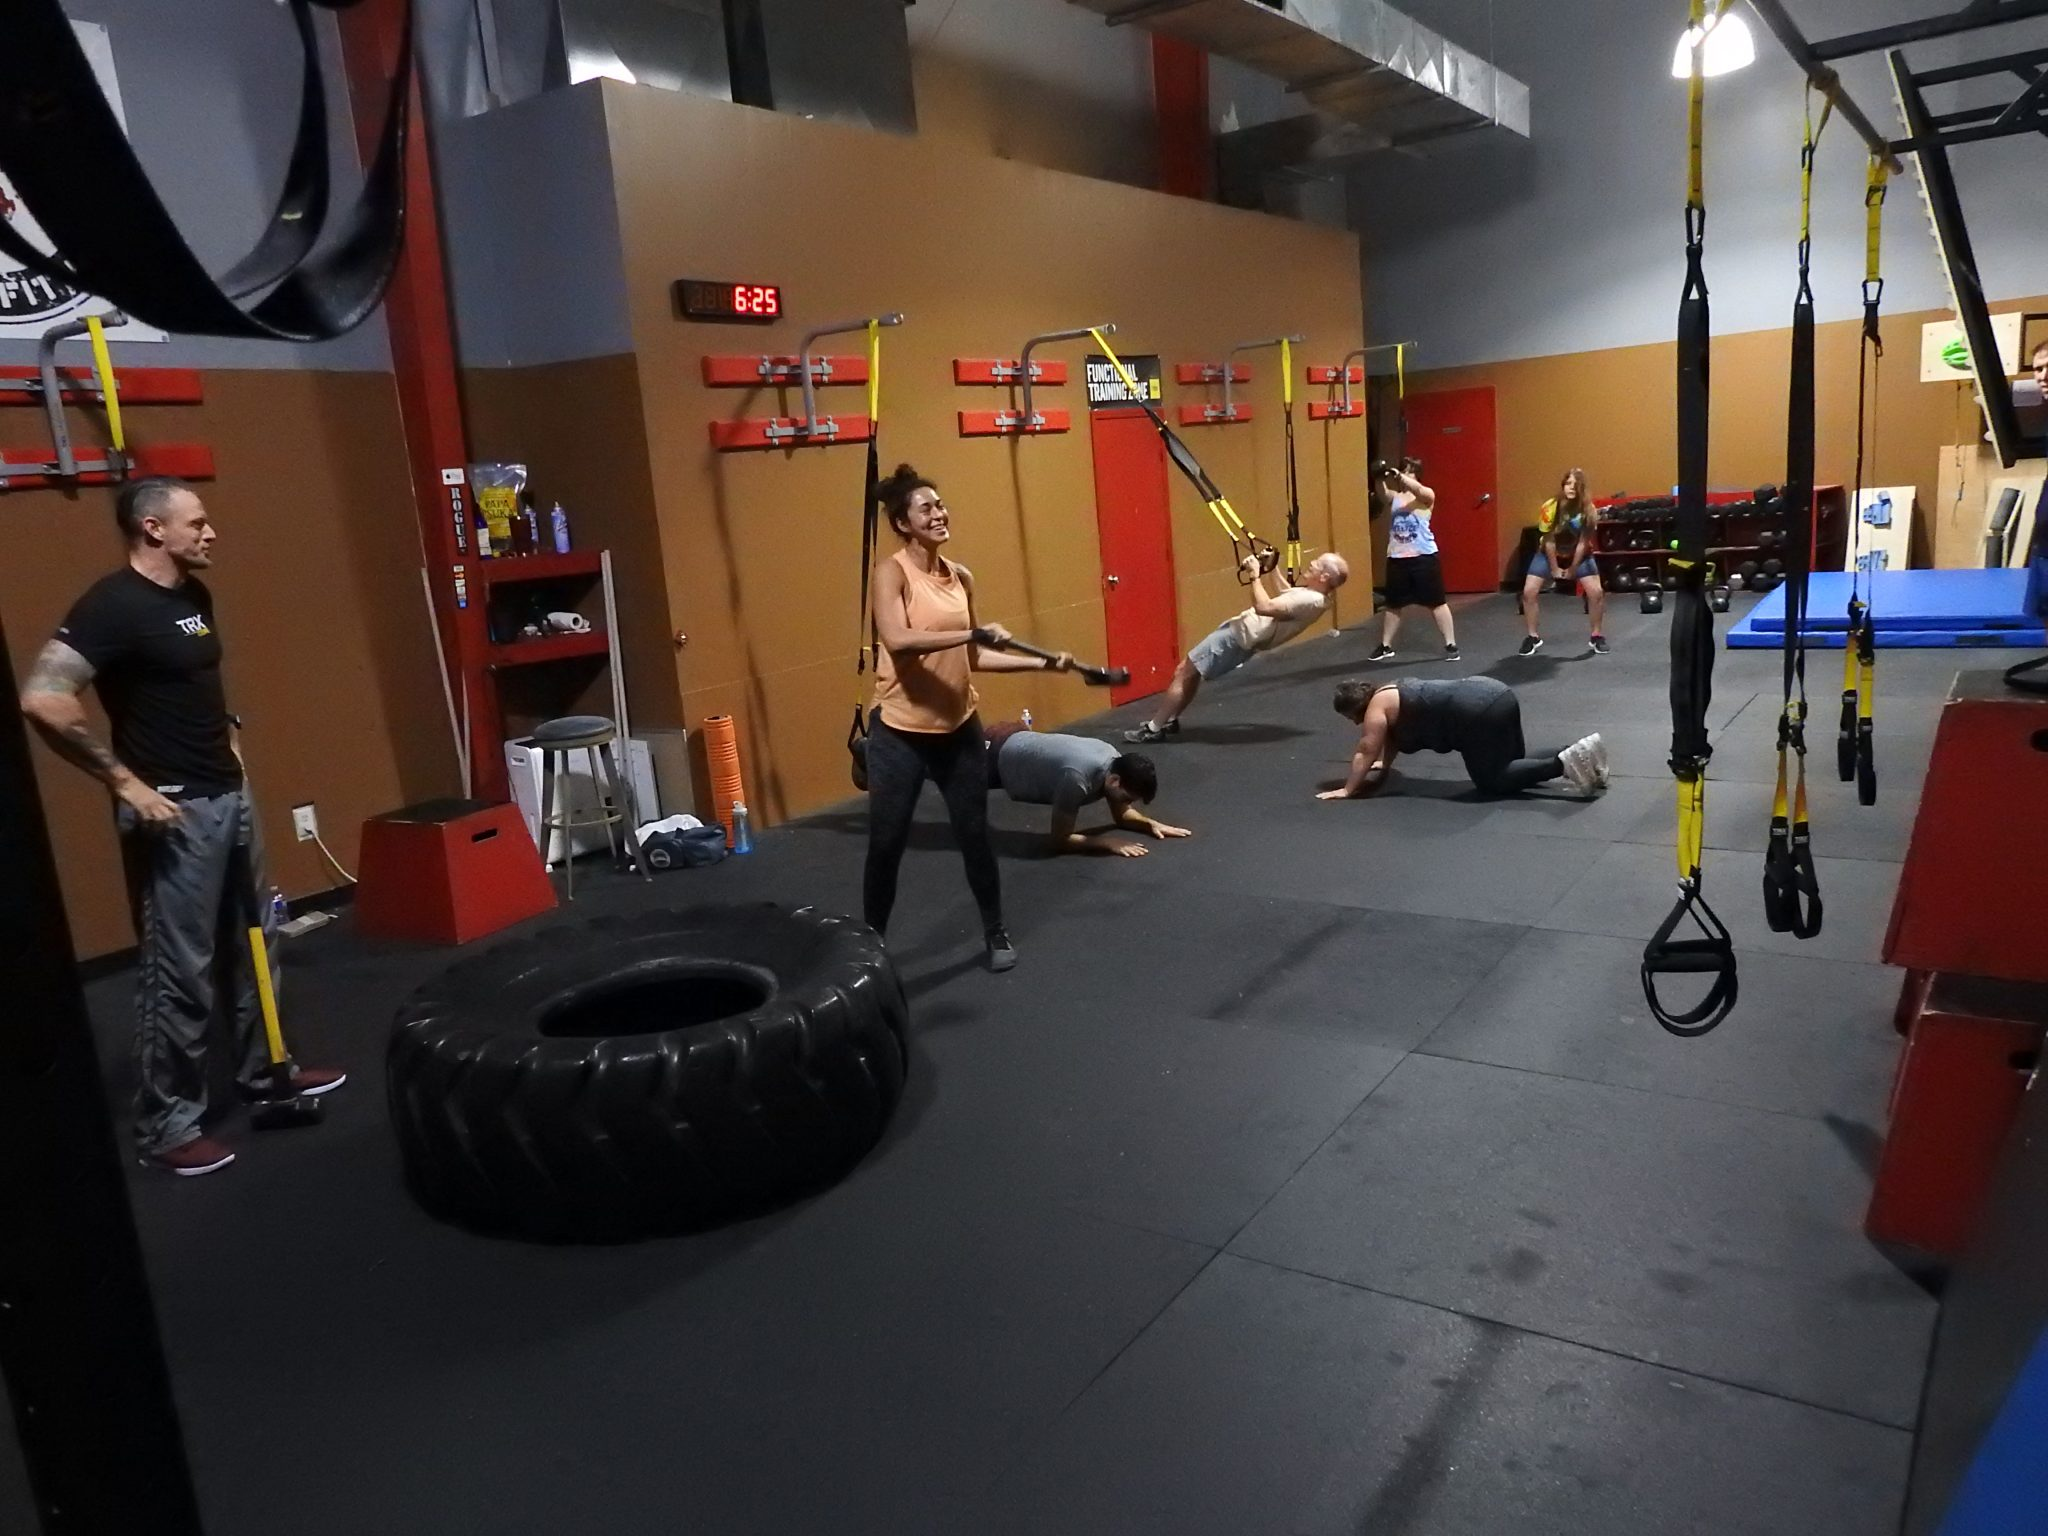 Boot Camp Workout Classes In Houston